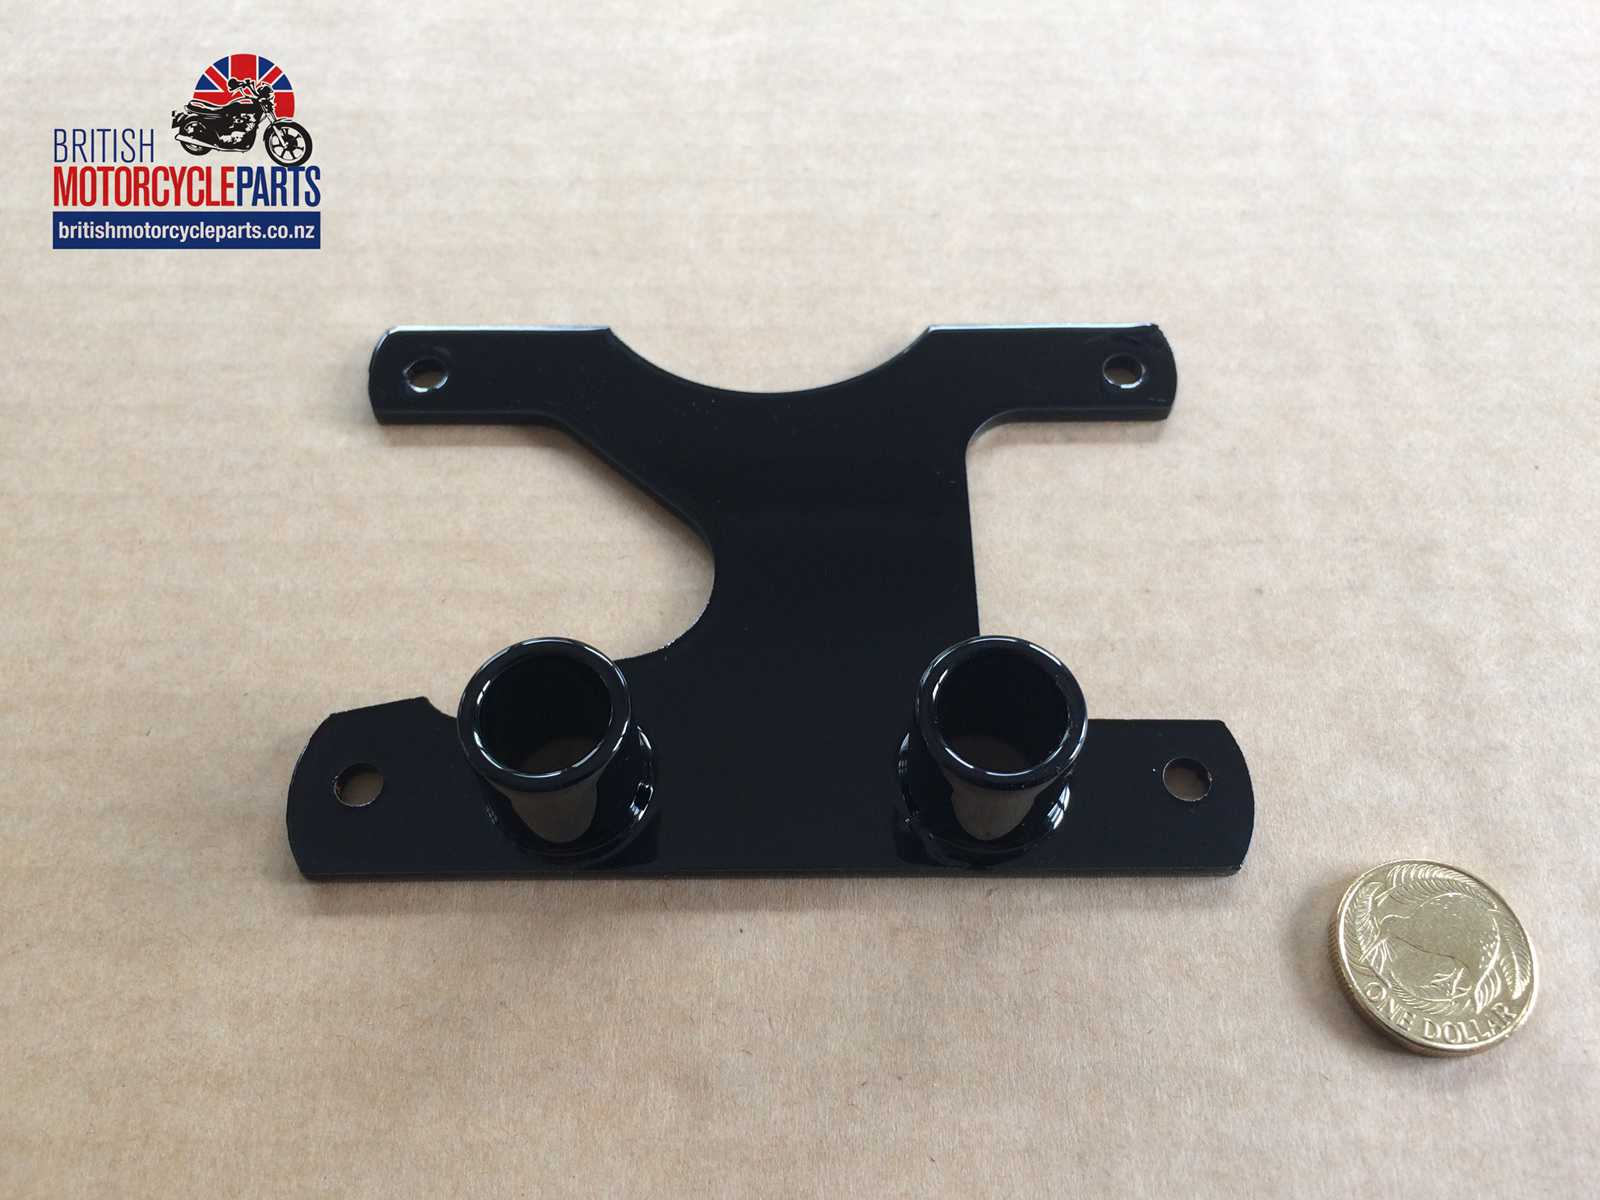 97-1946a speedo tacho mounting bracket - triumph - british